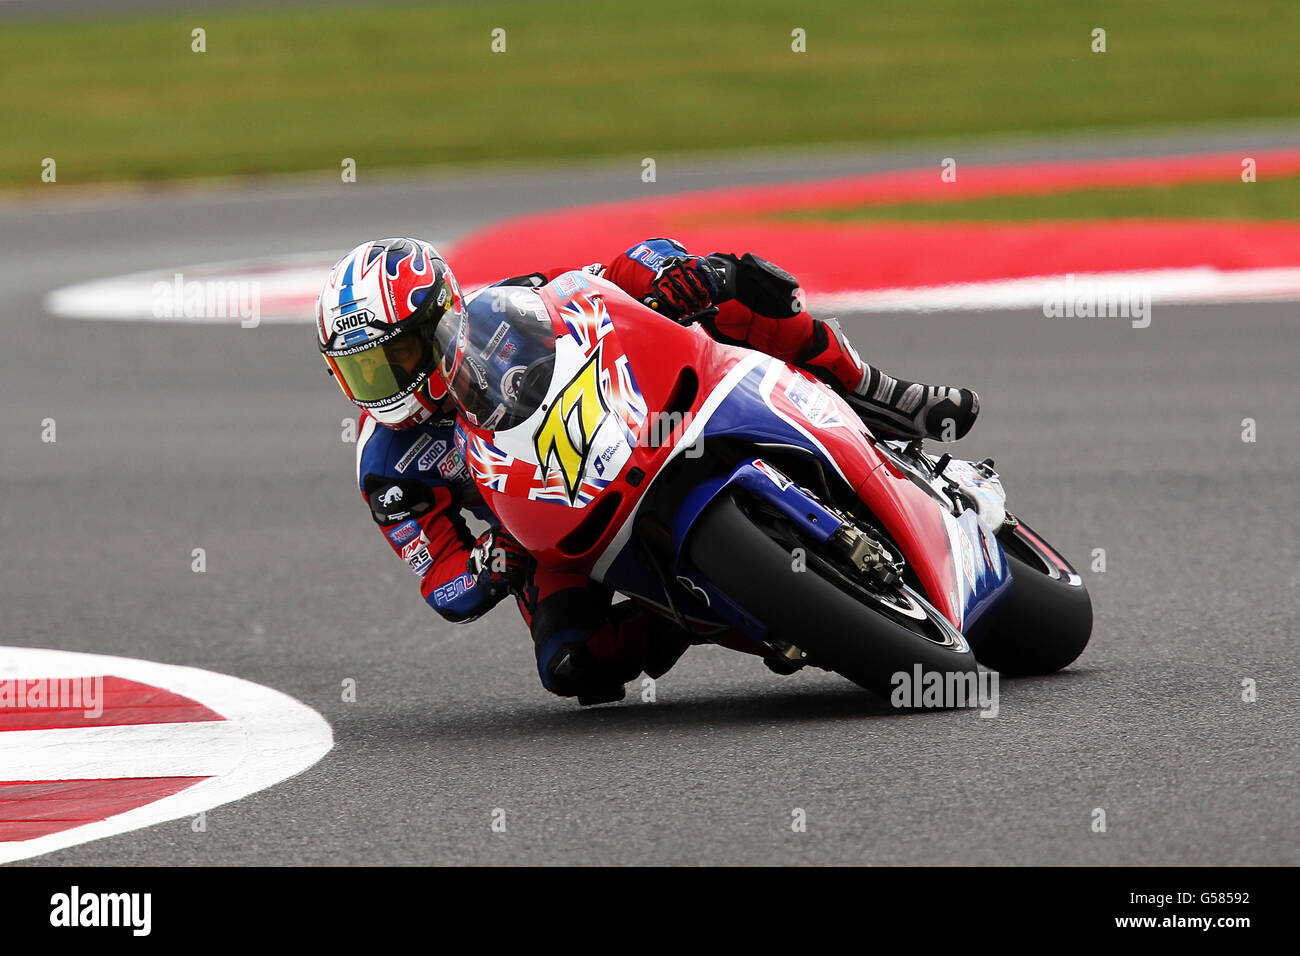 James Ellison during practice of the British Moto Grand Prix at Silverstone, Northamptonshire. Saturday June 16th Stock Photo